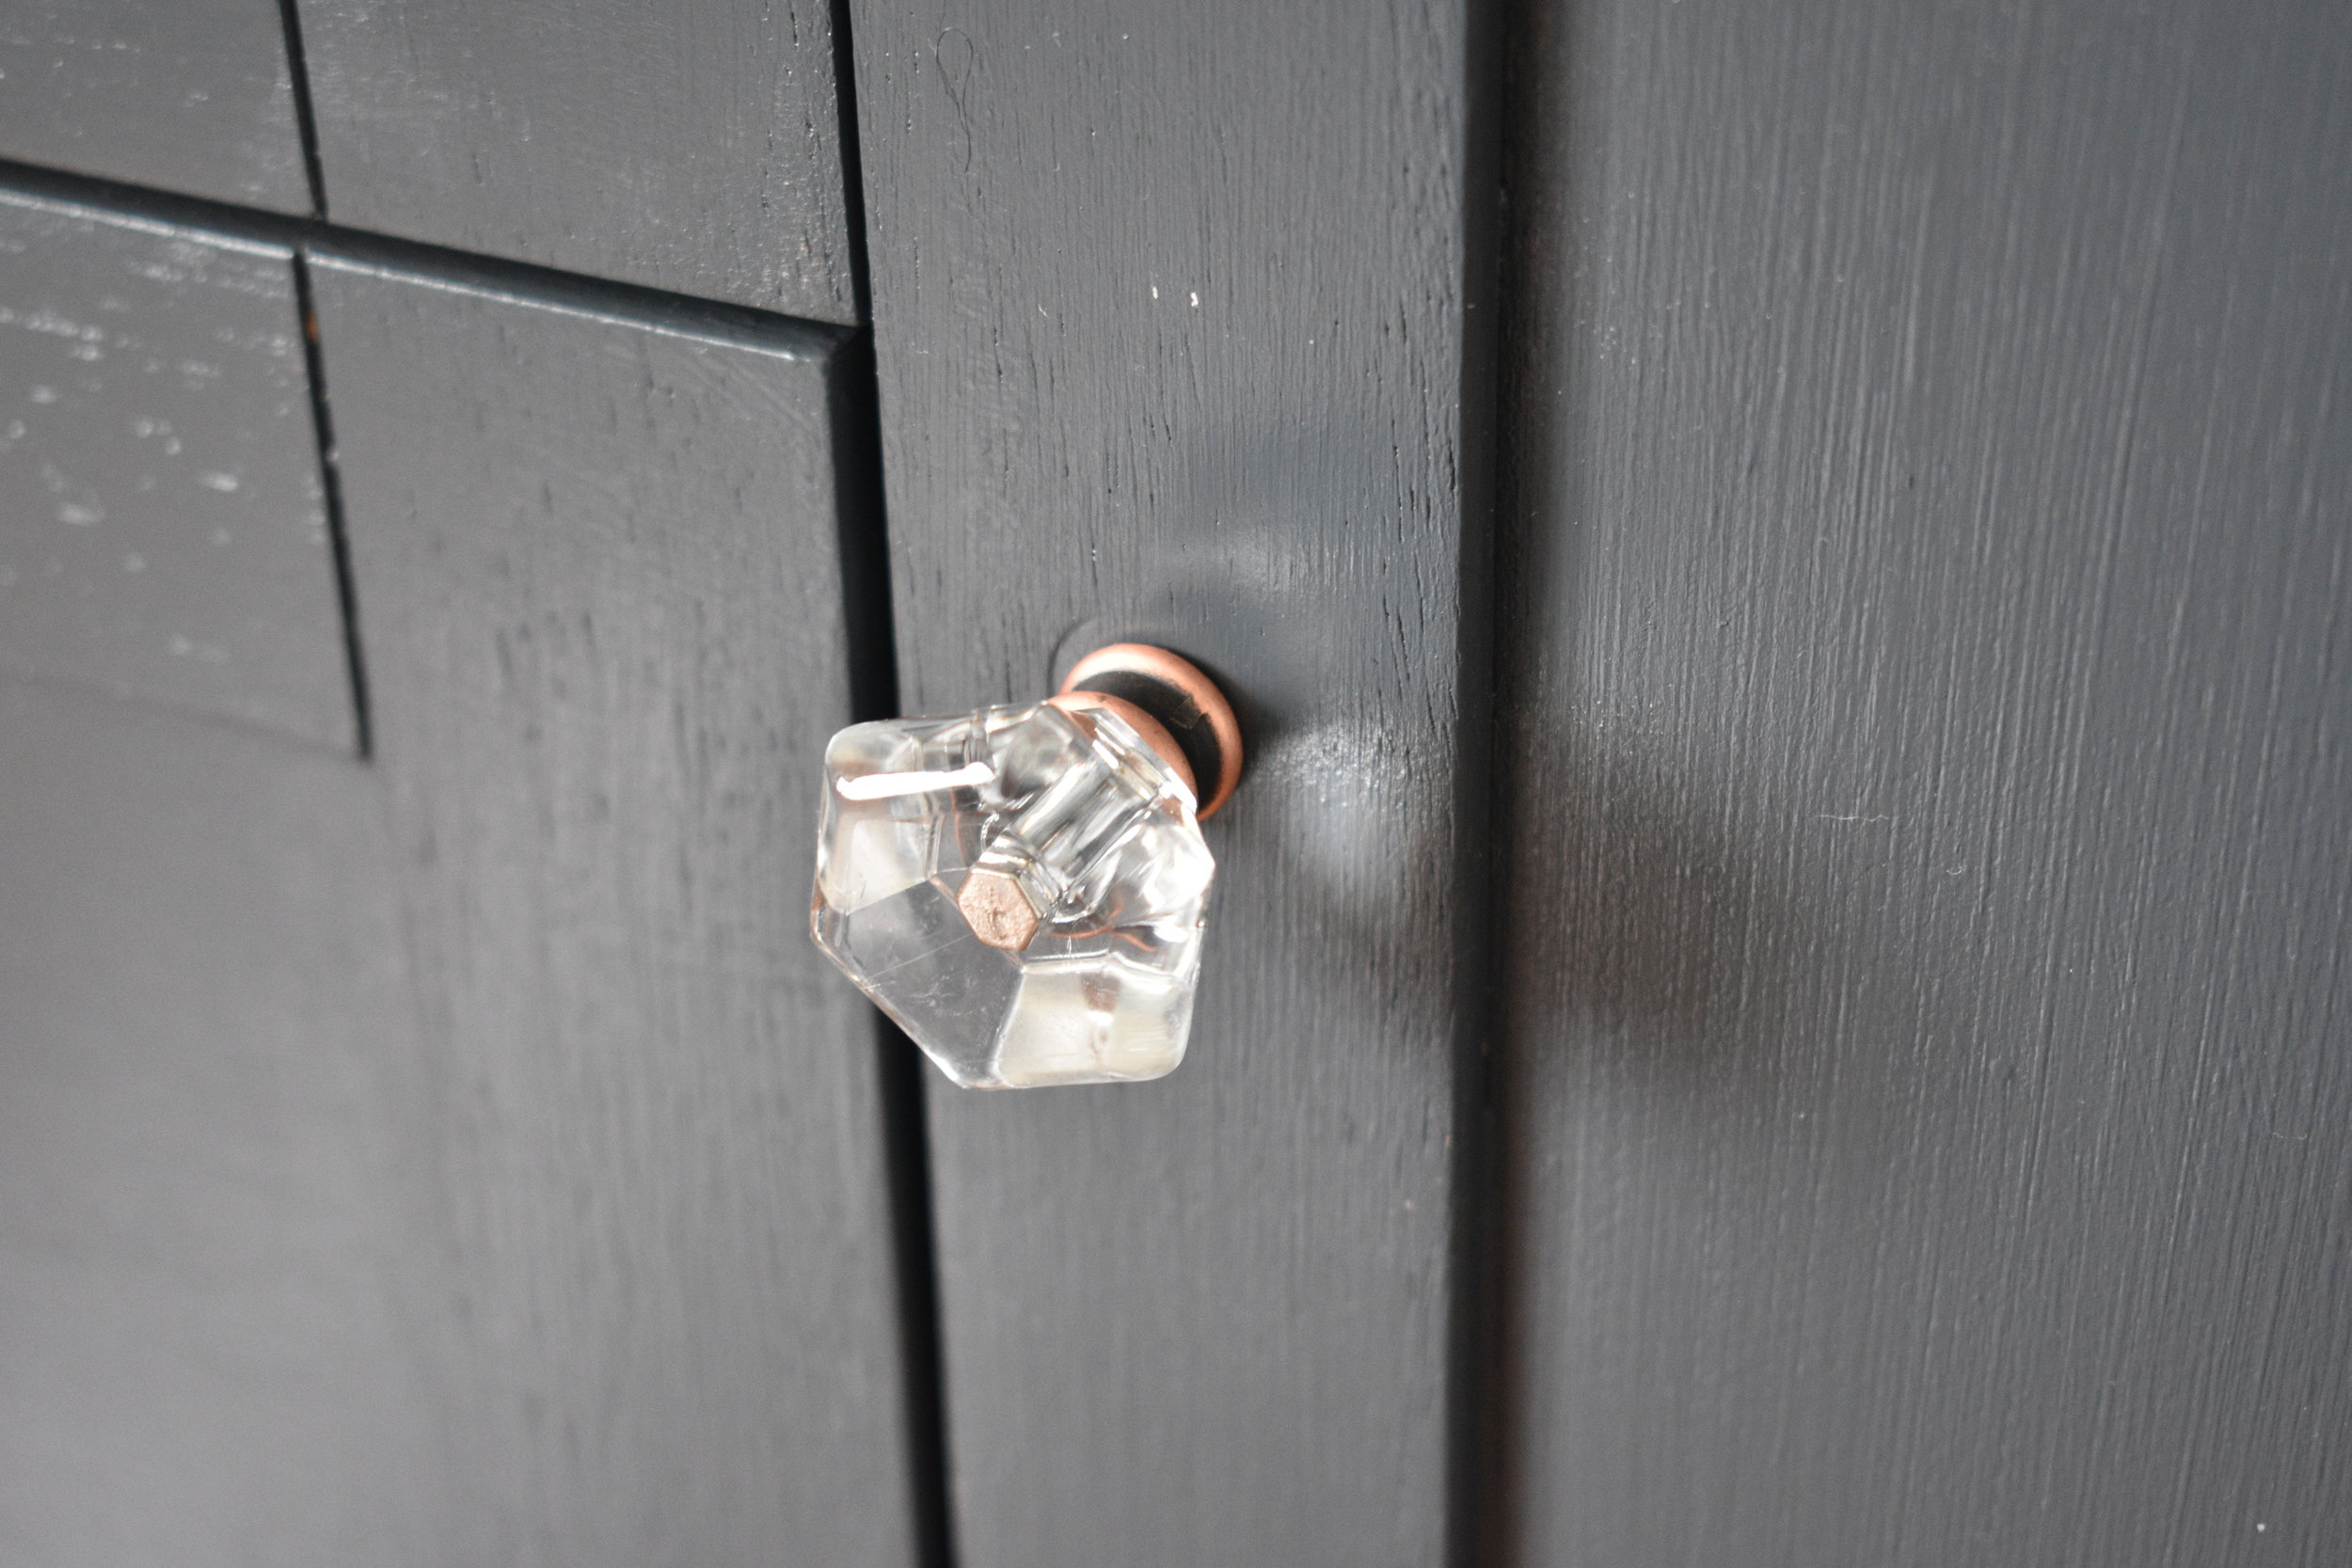 New glass knobs are a nice touch to give it a bit of sparkle